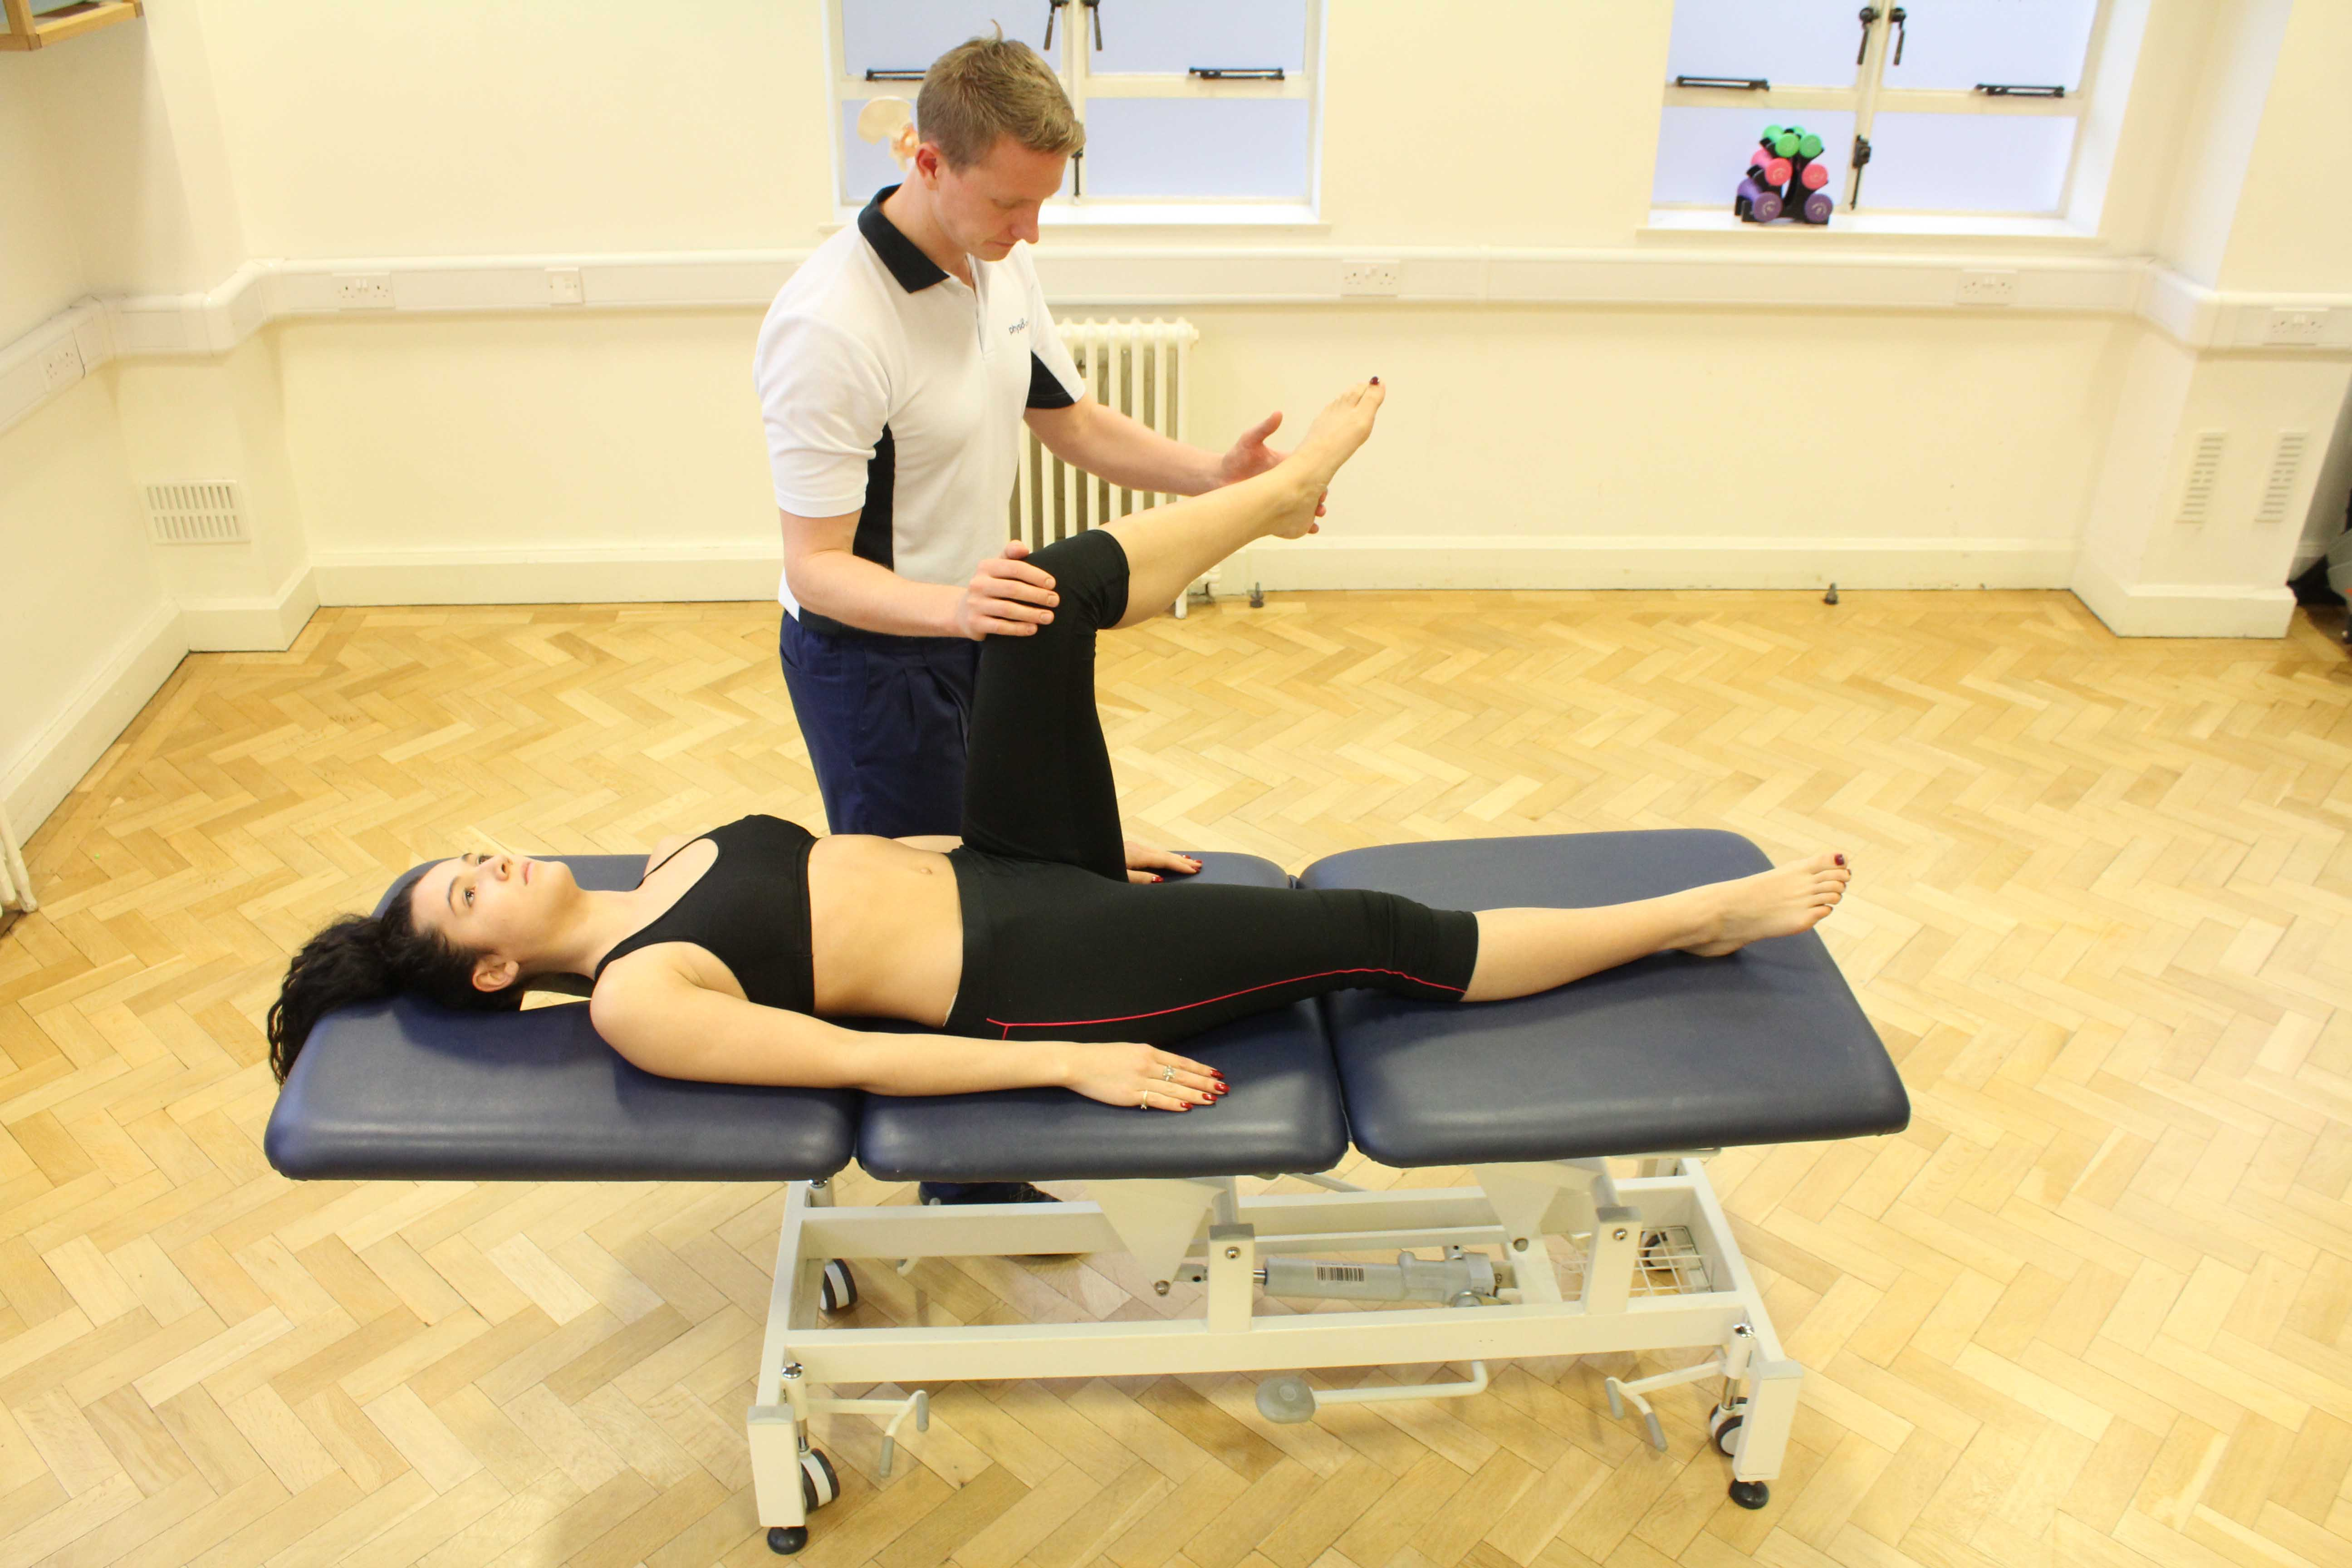 Mobilisations and stretches as part of a rehabilitation programme post surgery